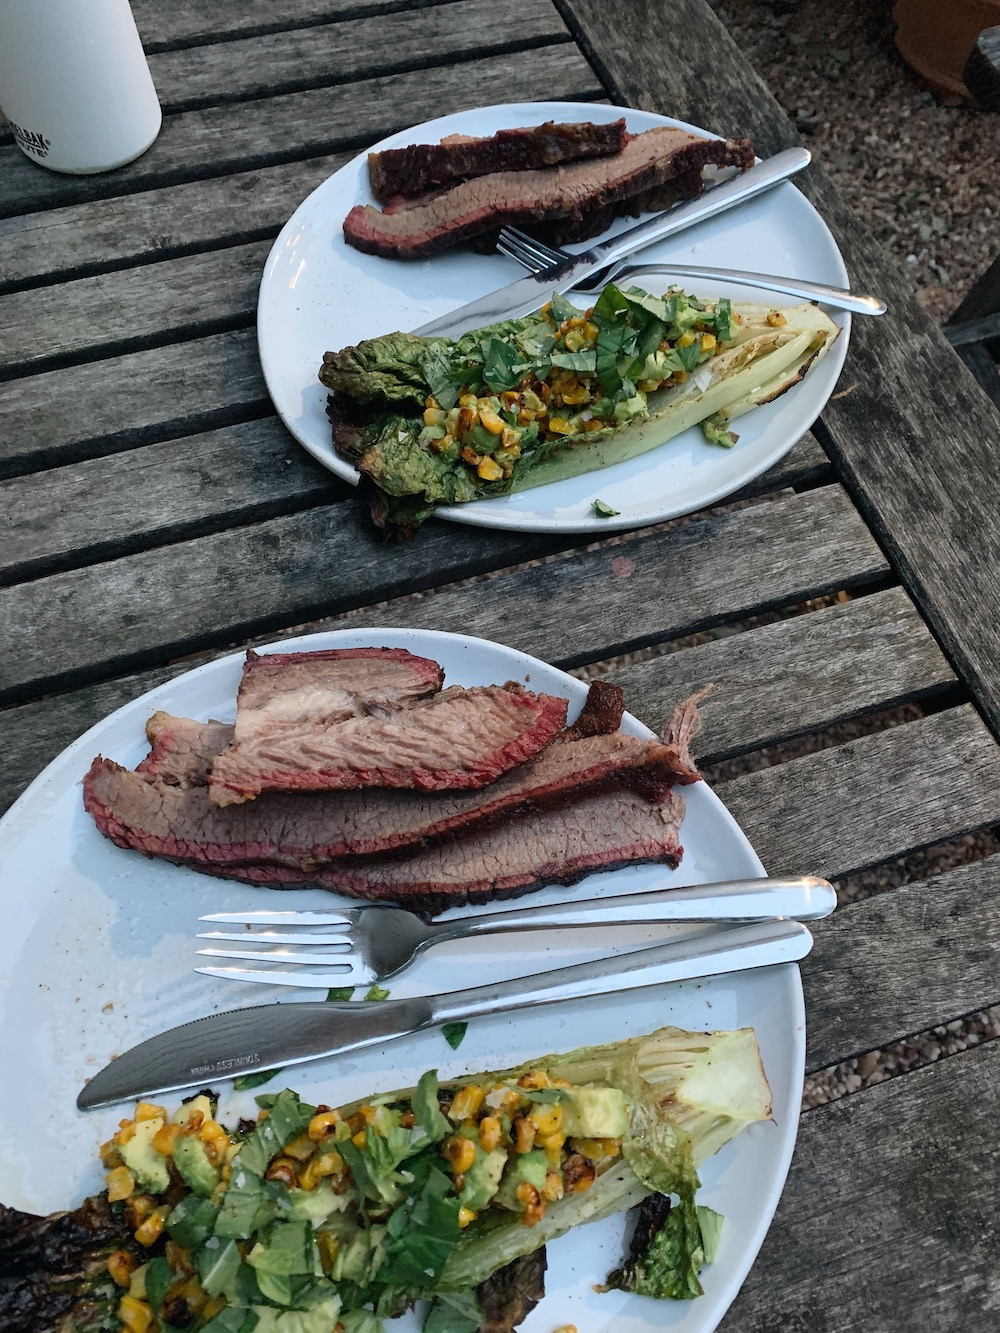 home cooking grill smoker brisket salad romaine lettuce corn avocado dinner recipe